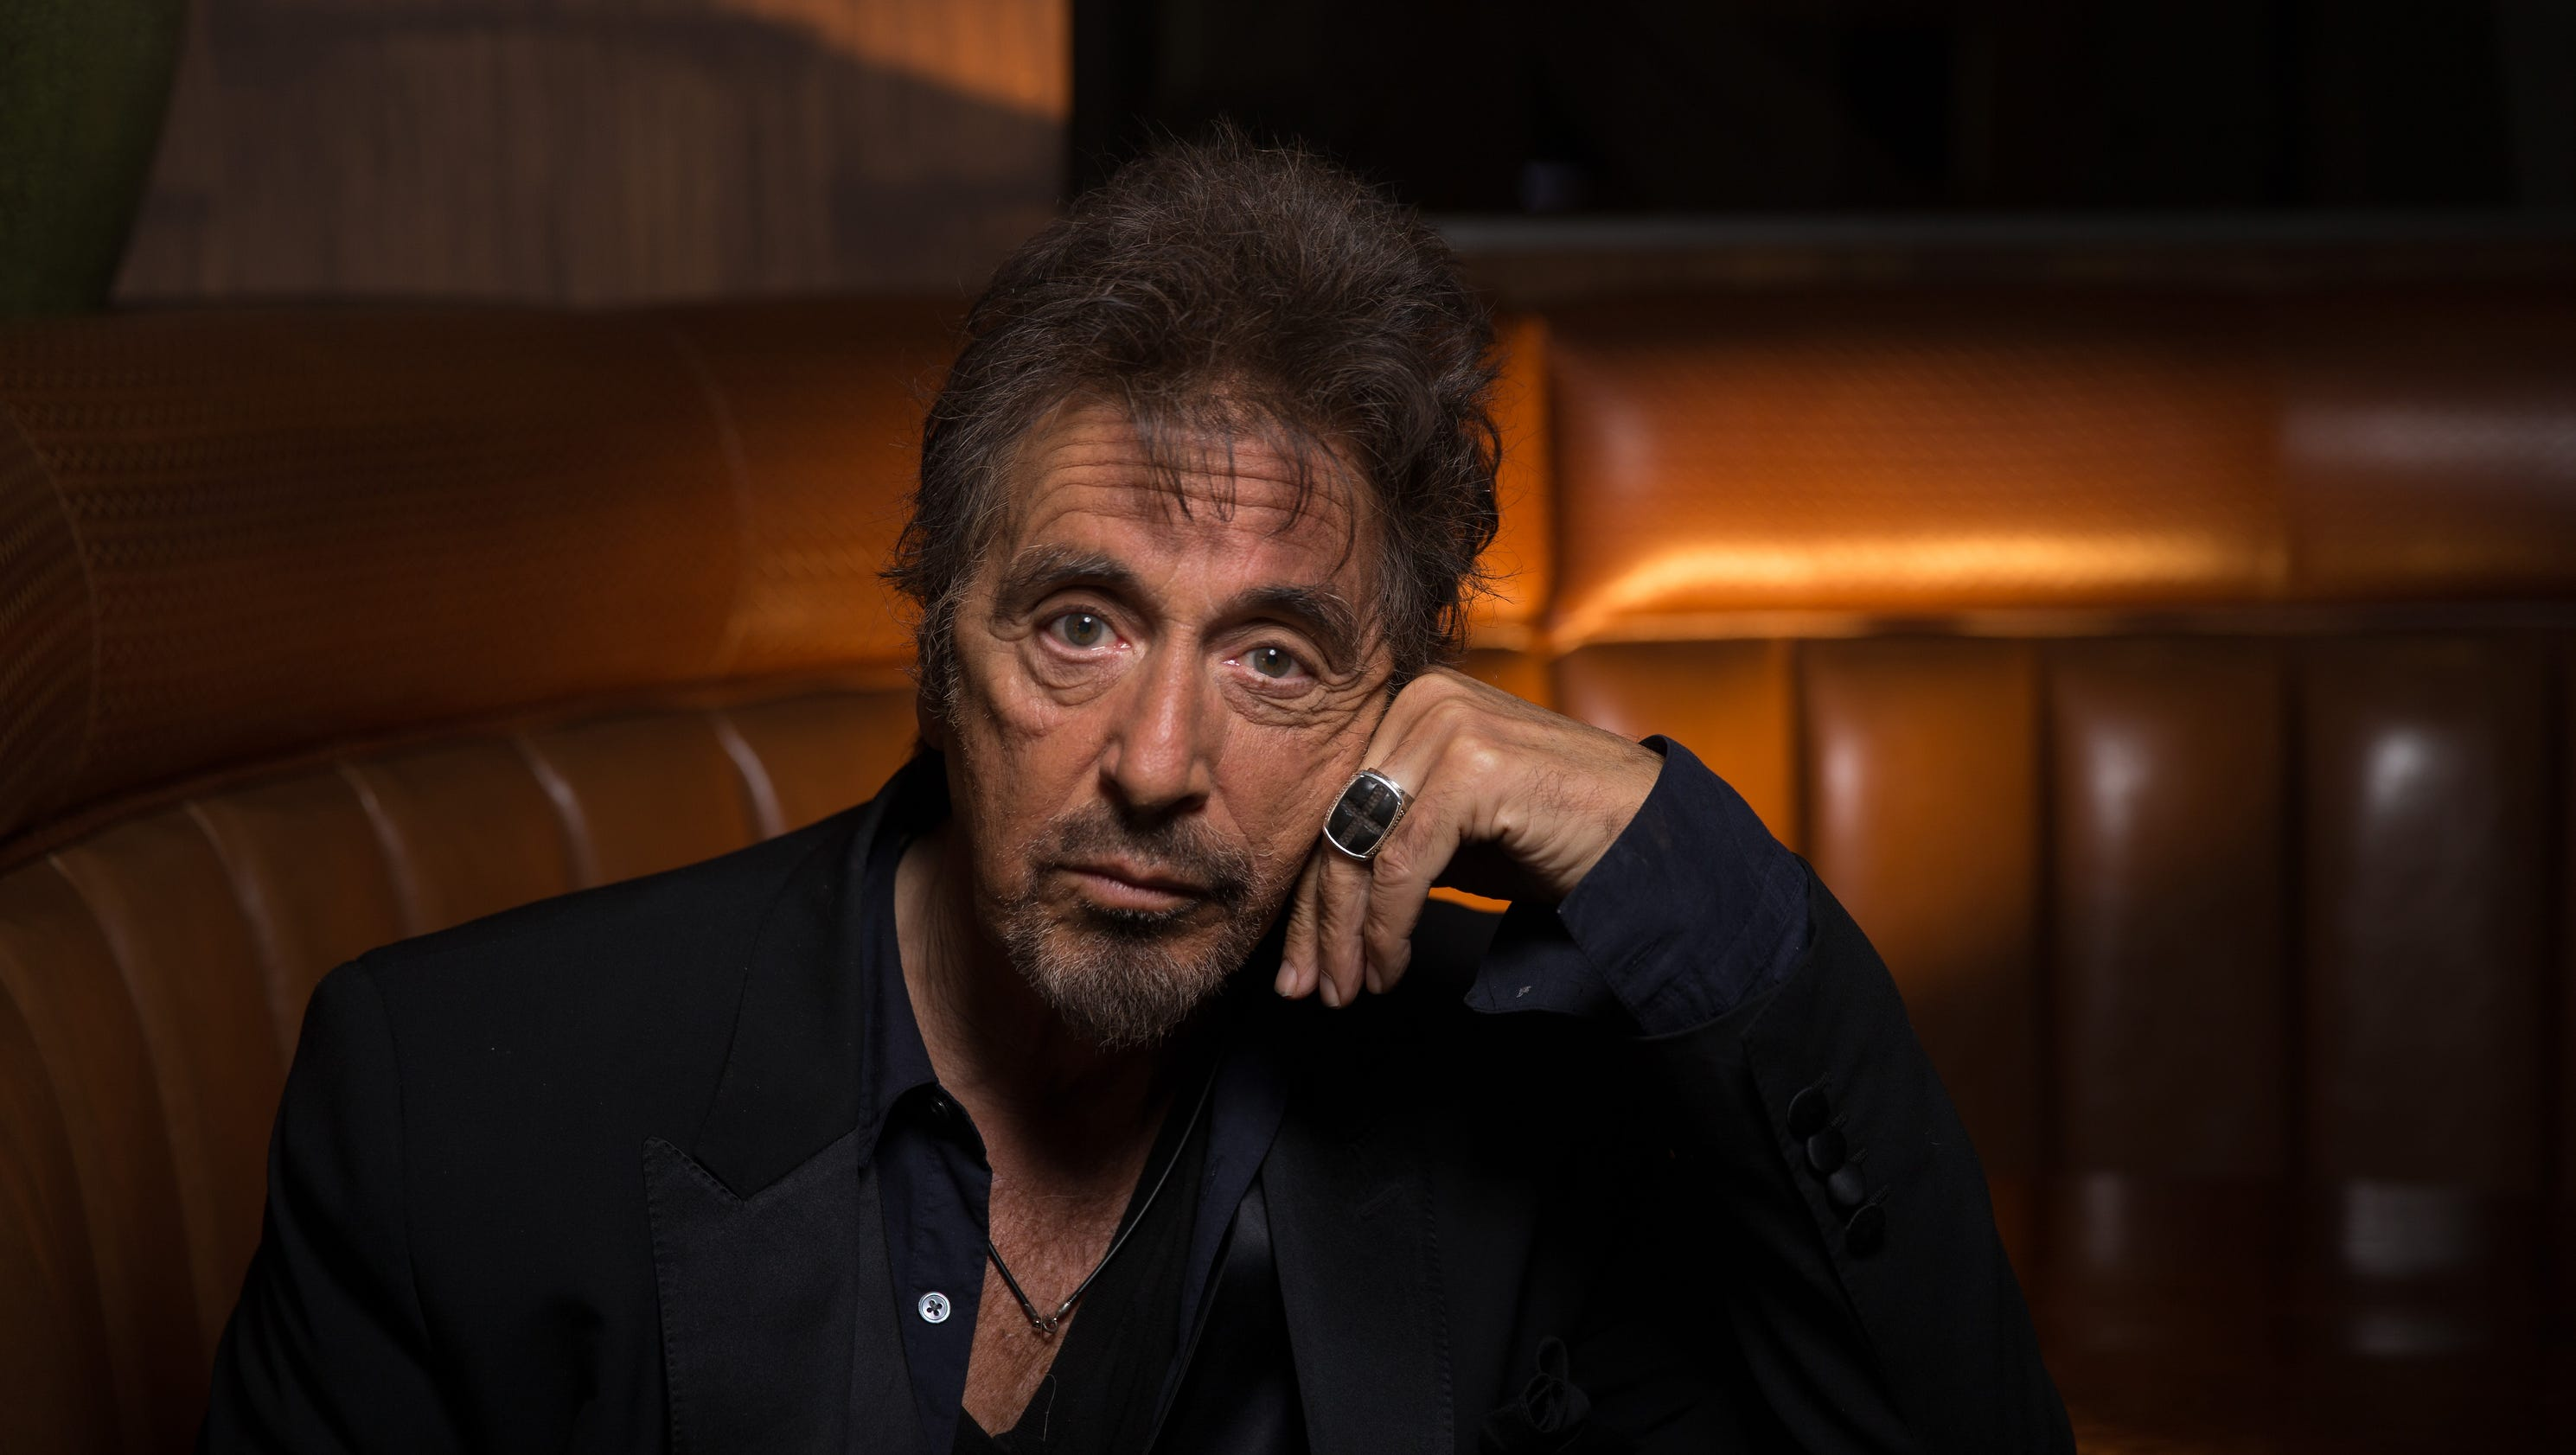 Actor and director Al Pacino at 75